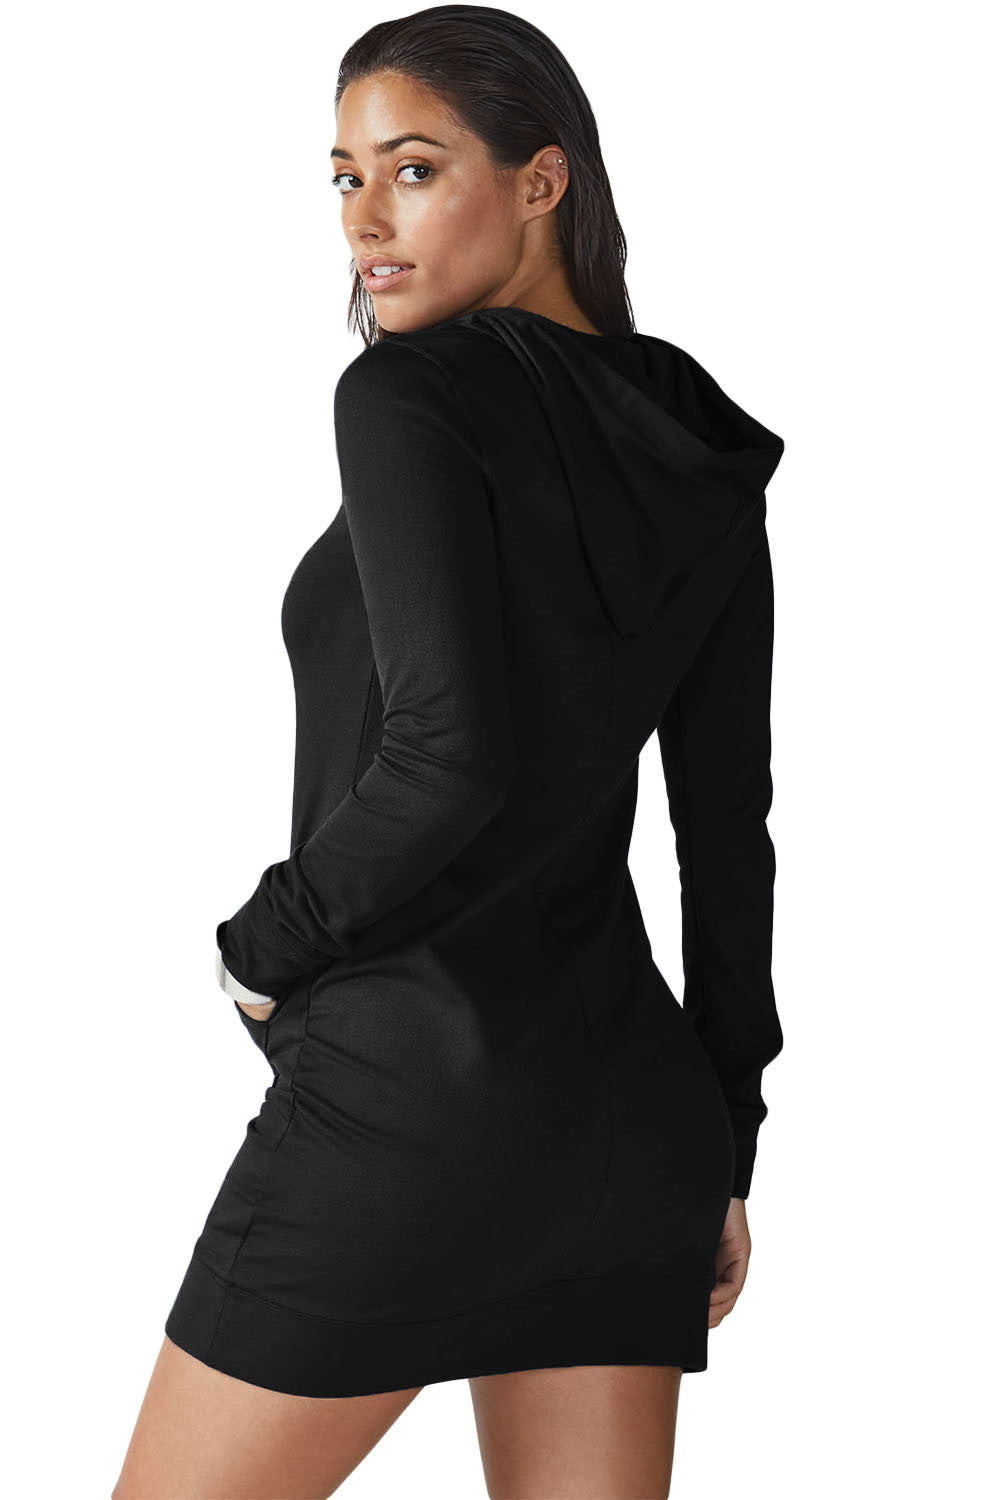 Black Slim Fit Hoodie Mini Dress - Front Pocket